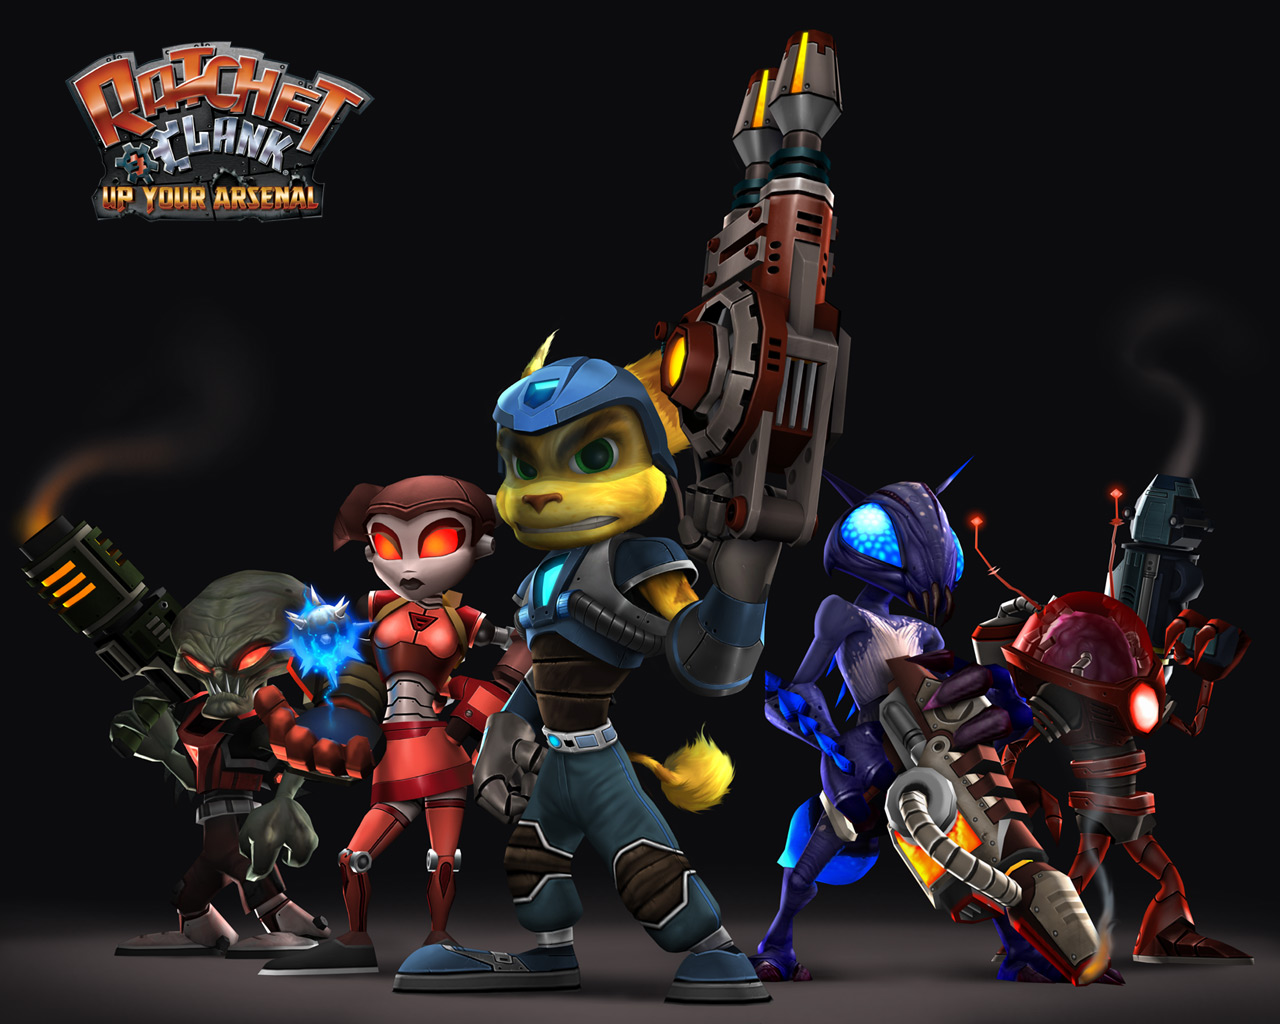 Ratchet Clank Ratchet And Clank Wallpaper 642429 Fanpop